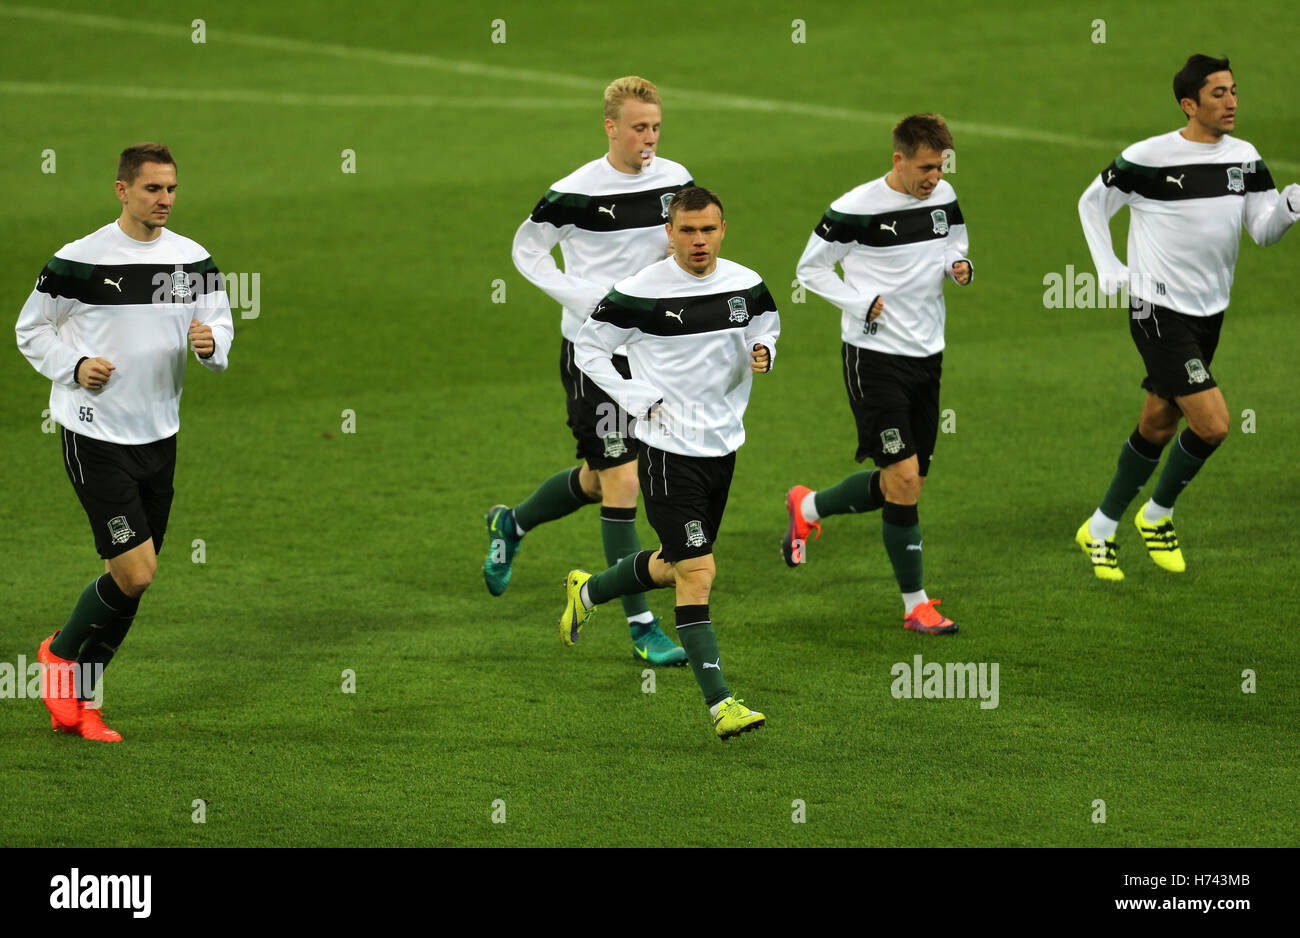 1018d31fb9211 02nd Nov, 2016. FC Krasnodar players jogging during the team's final  training session before meeting the German team FC Schalke 04 in the Europa  League in ...